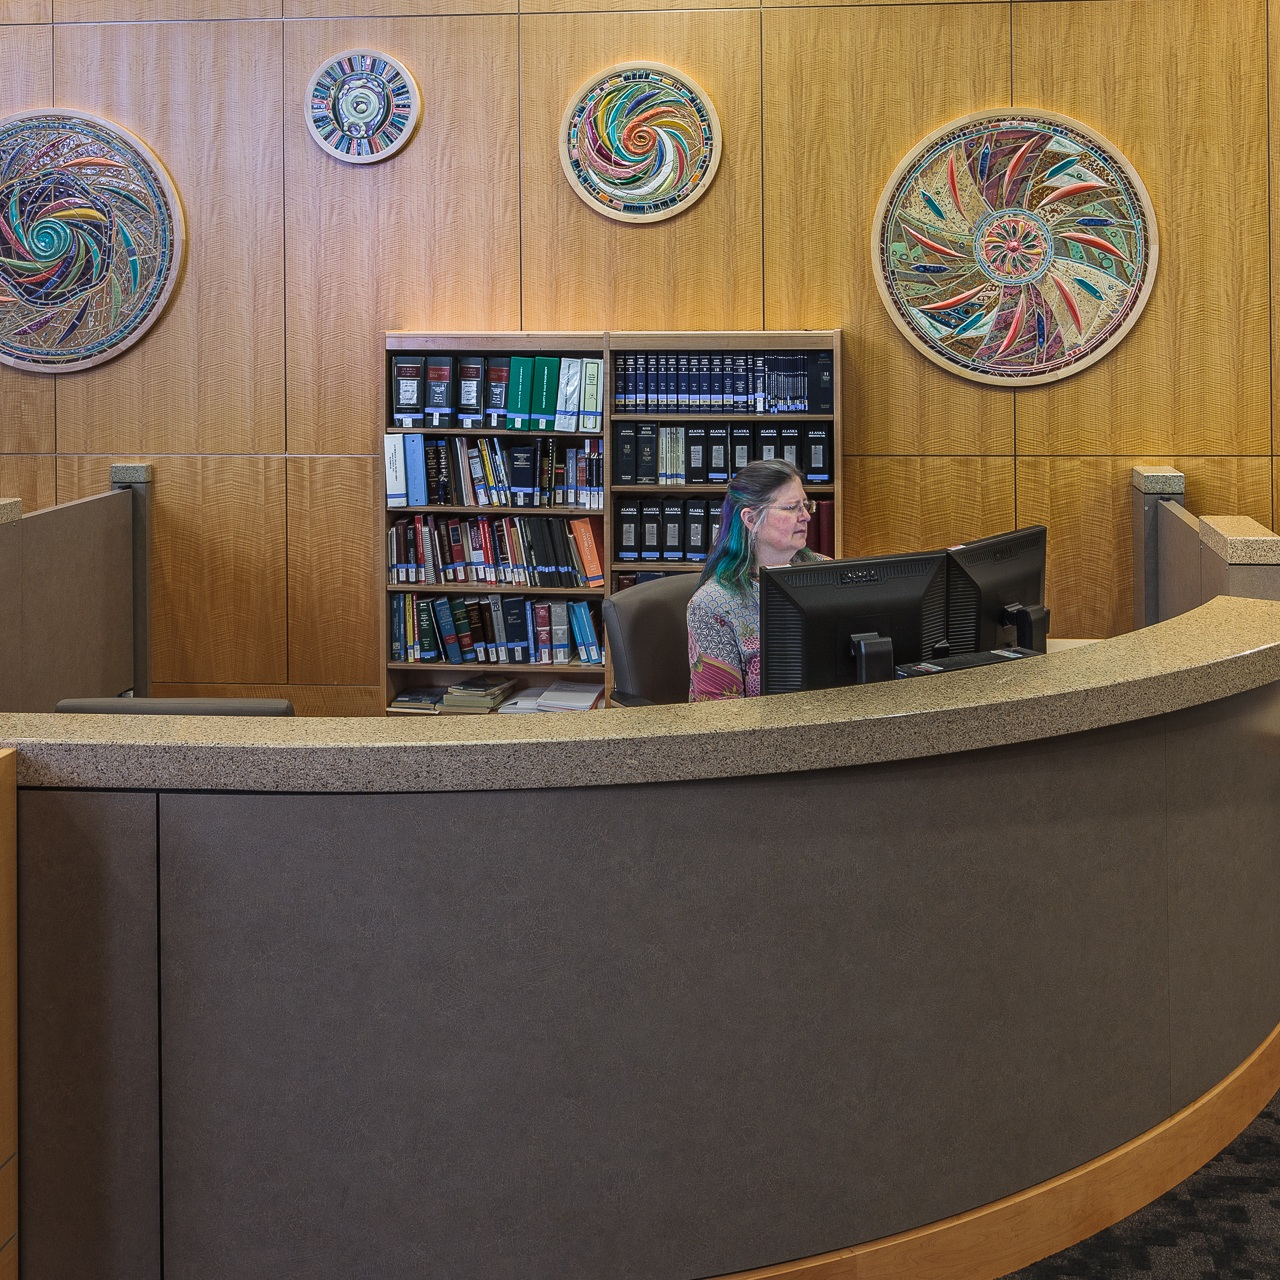 Ceramic Tile Murals - Boney Courthouse Law Library, Anchorage, Alaska